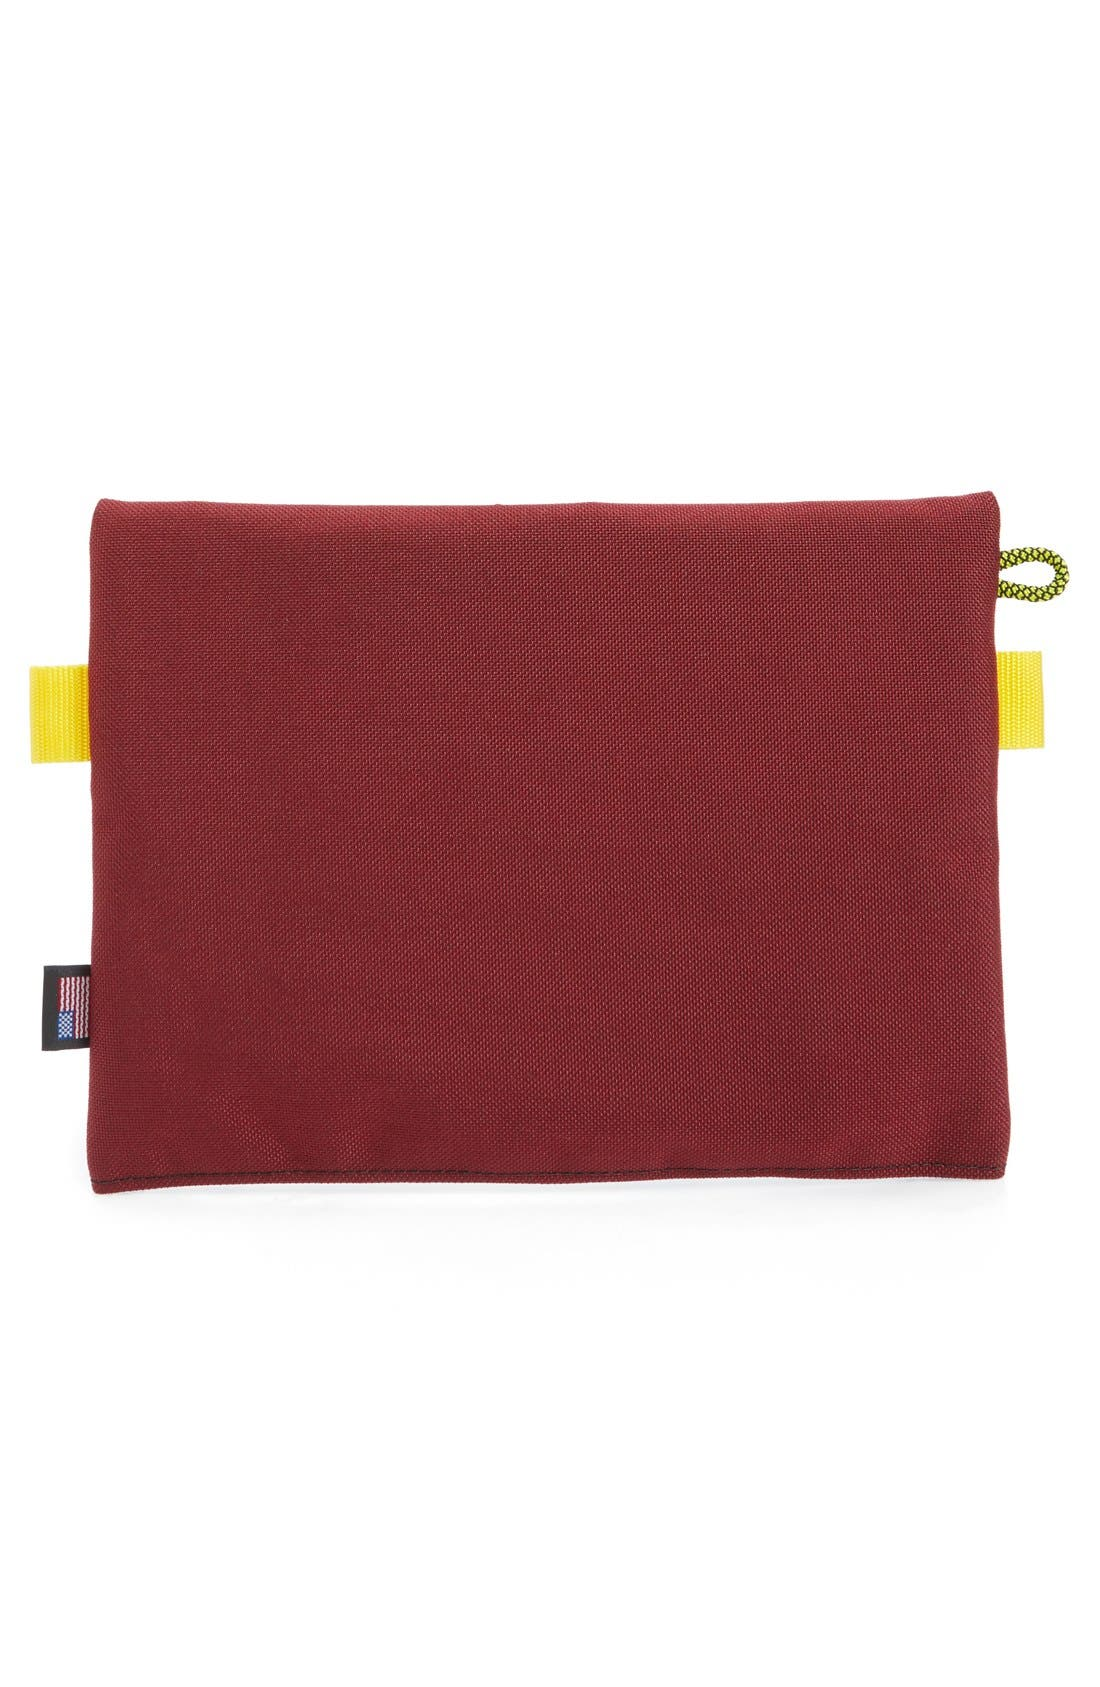 ,                             TopoDesigns Accessory Bag,                             Alternate thumbnail 3, color,                             BURGUNDY/ TURQUOISE